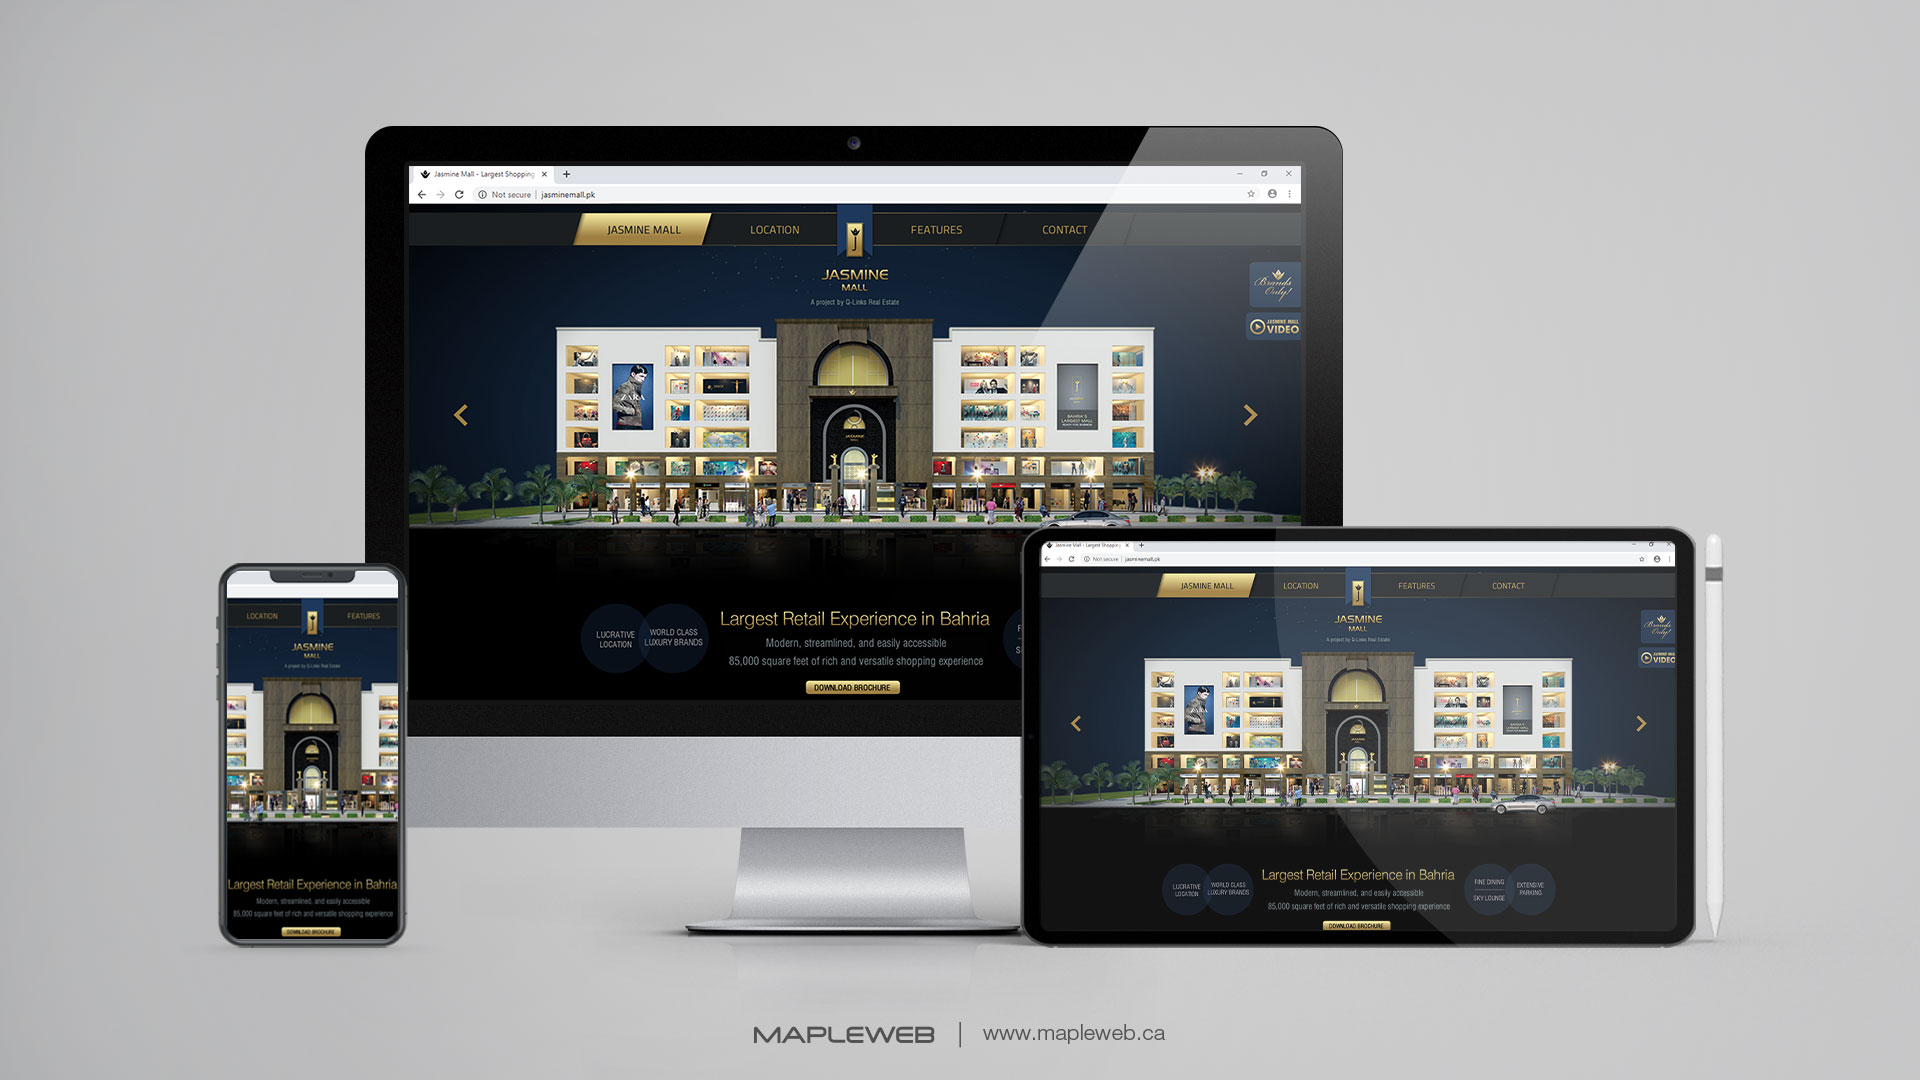 jasmine-mall-Vancouver-web-design-Vancouver-web-development-by-mapleweb-canada-multiple-devices-display